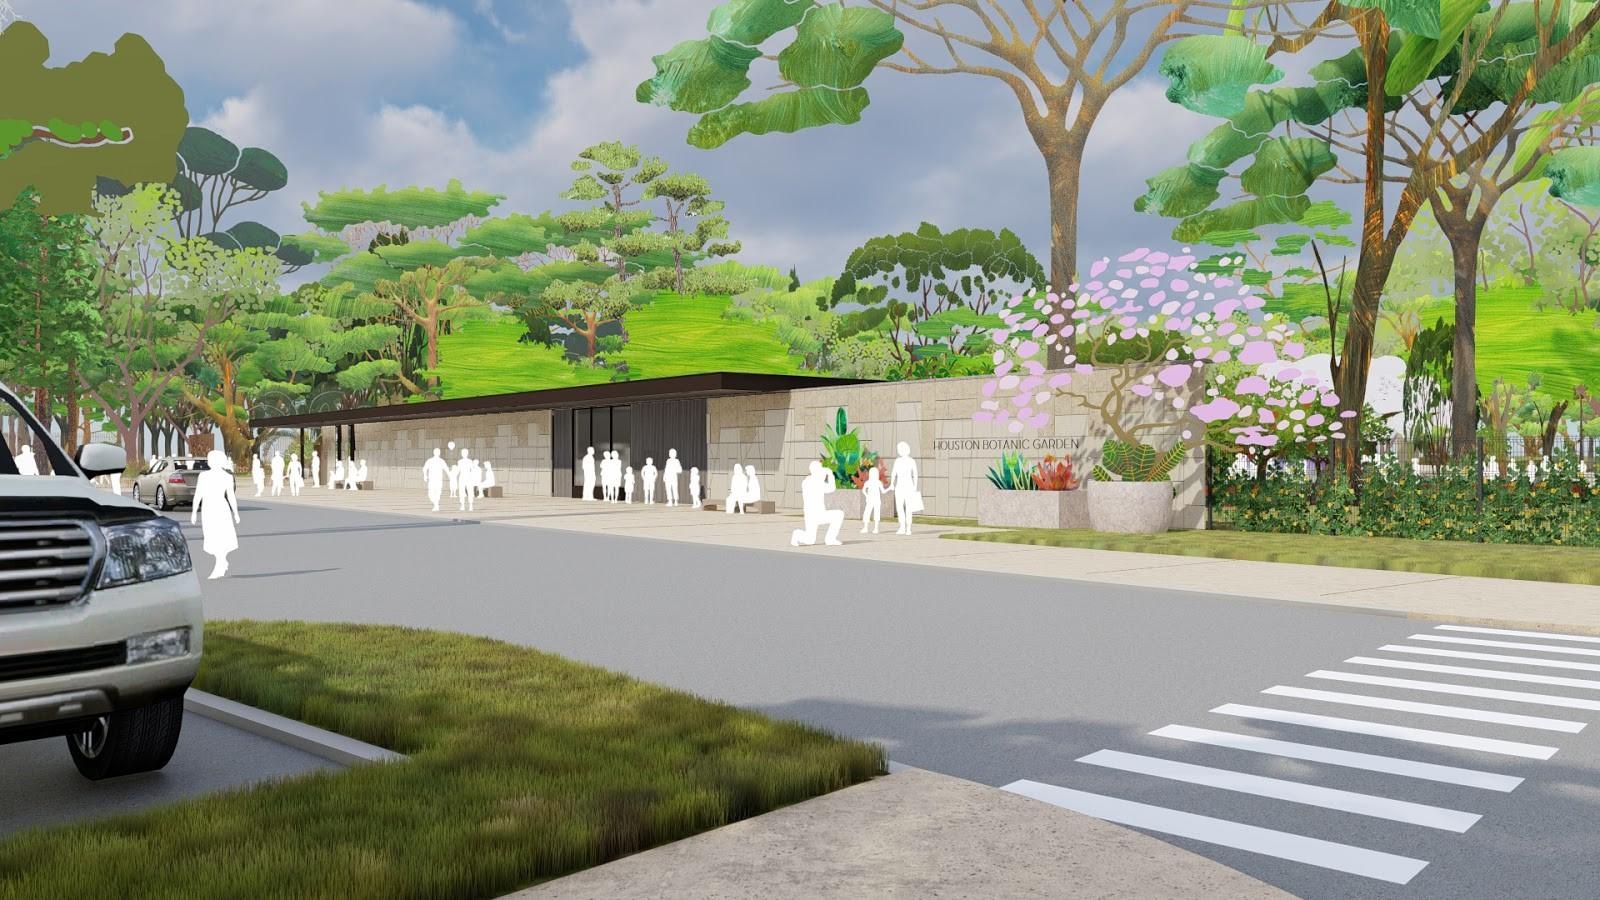 Houston Botanic Garden's edible 'rooms' will lead visitors around the world in an acre